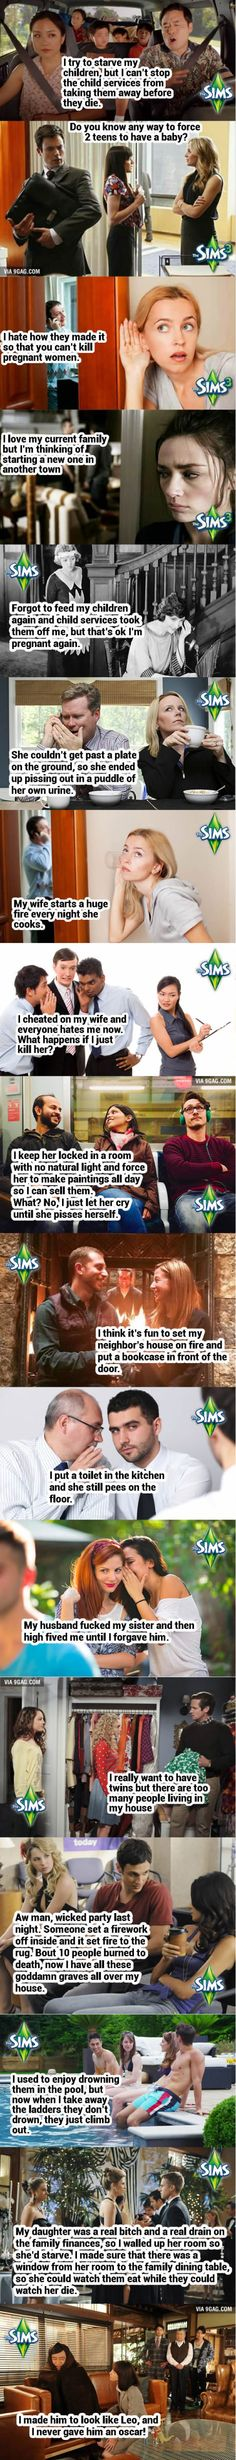 One Does Not Simply Discusses The Sims In Public